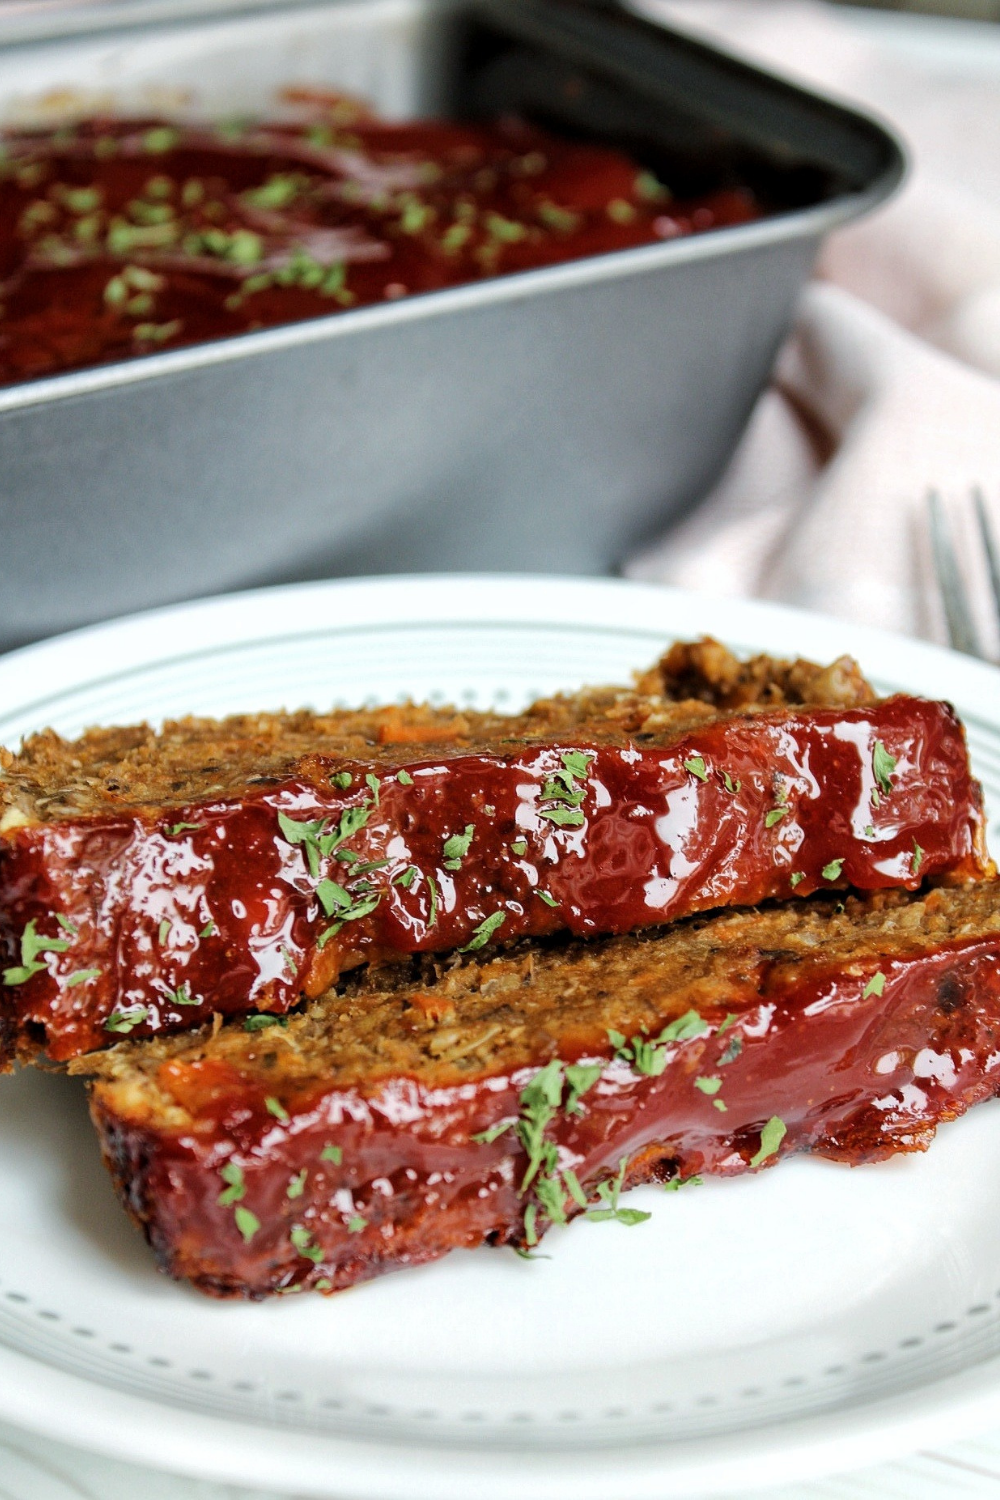 Two slices of vegan lentil loaf with ketchup glaze and topped with parsley.